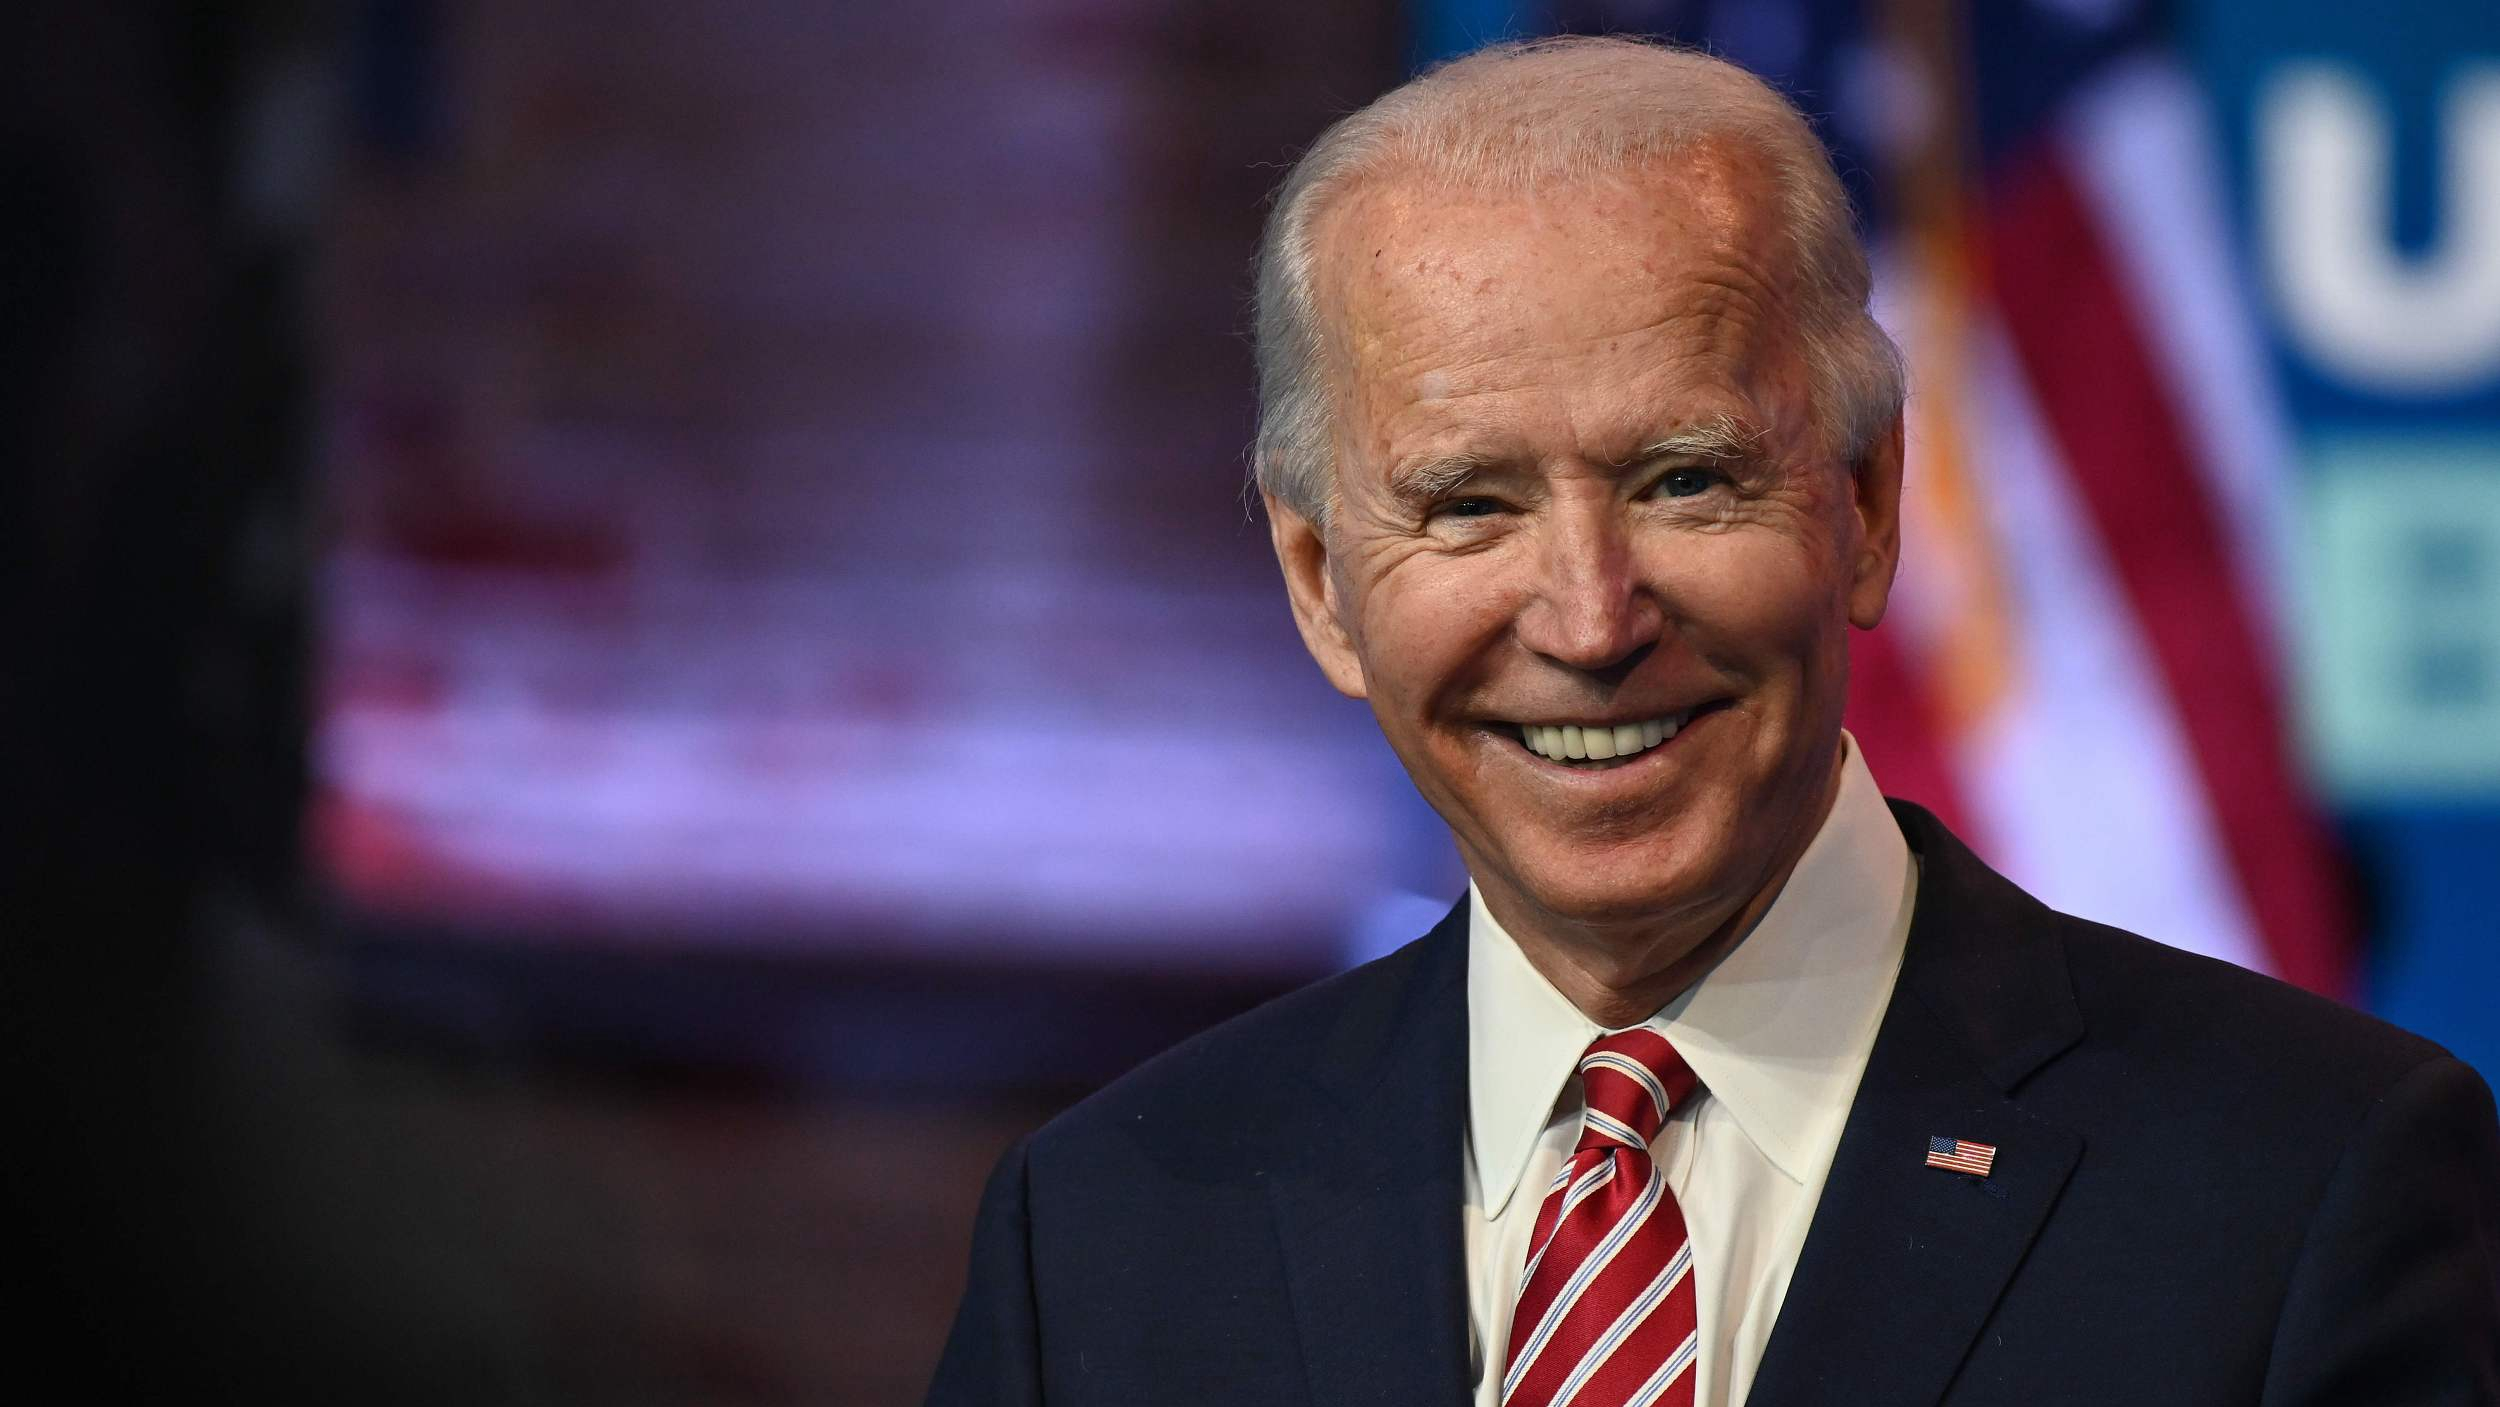 Biden to receive first national security briefing on Tuesday